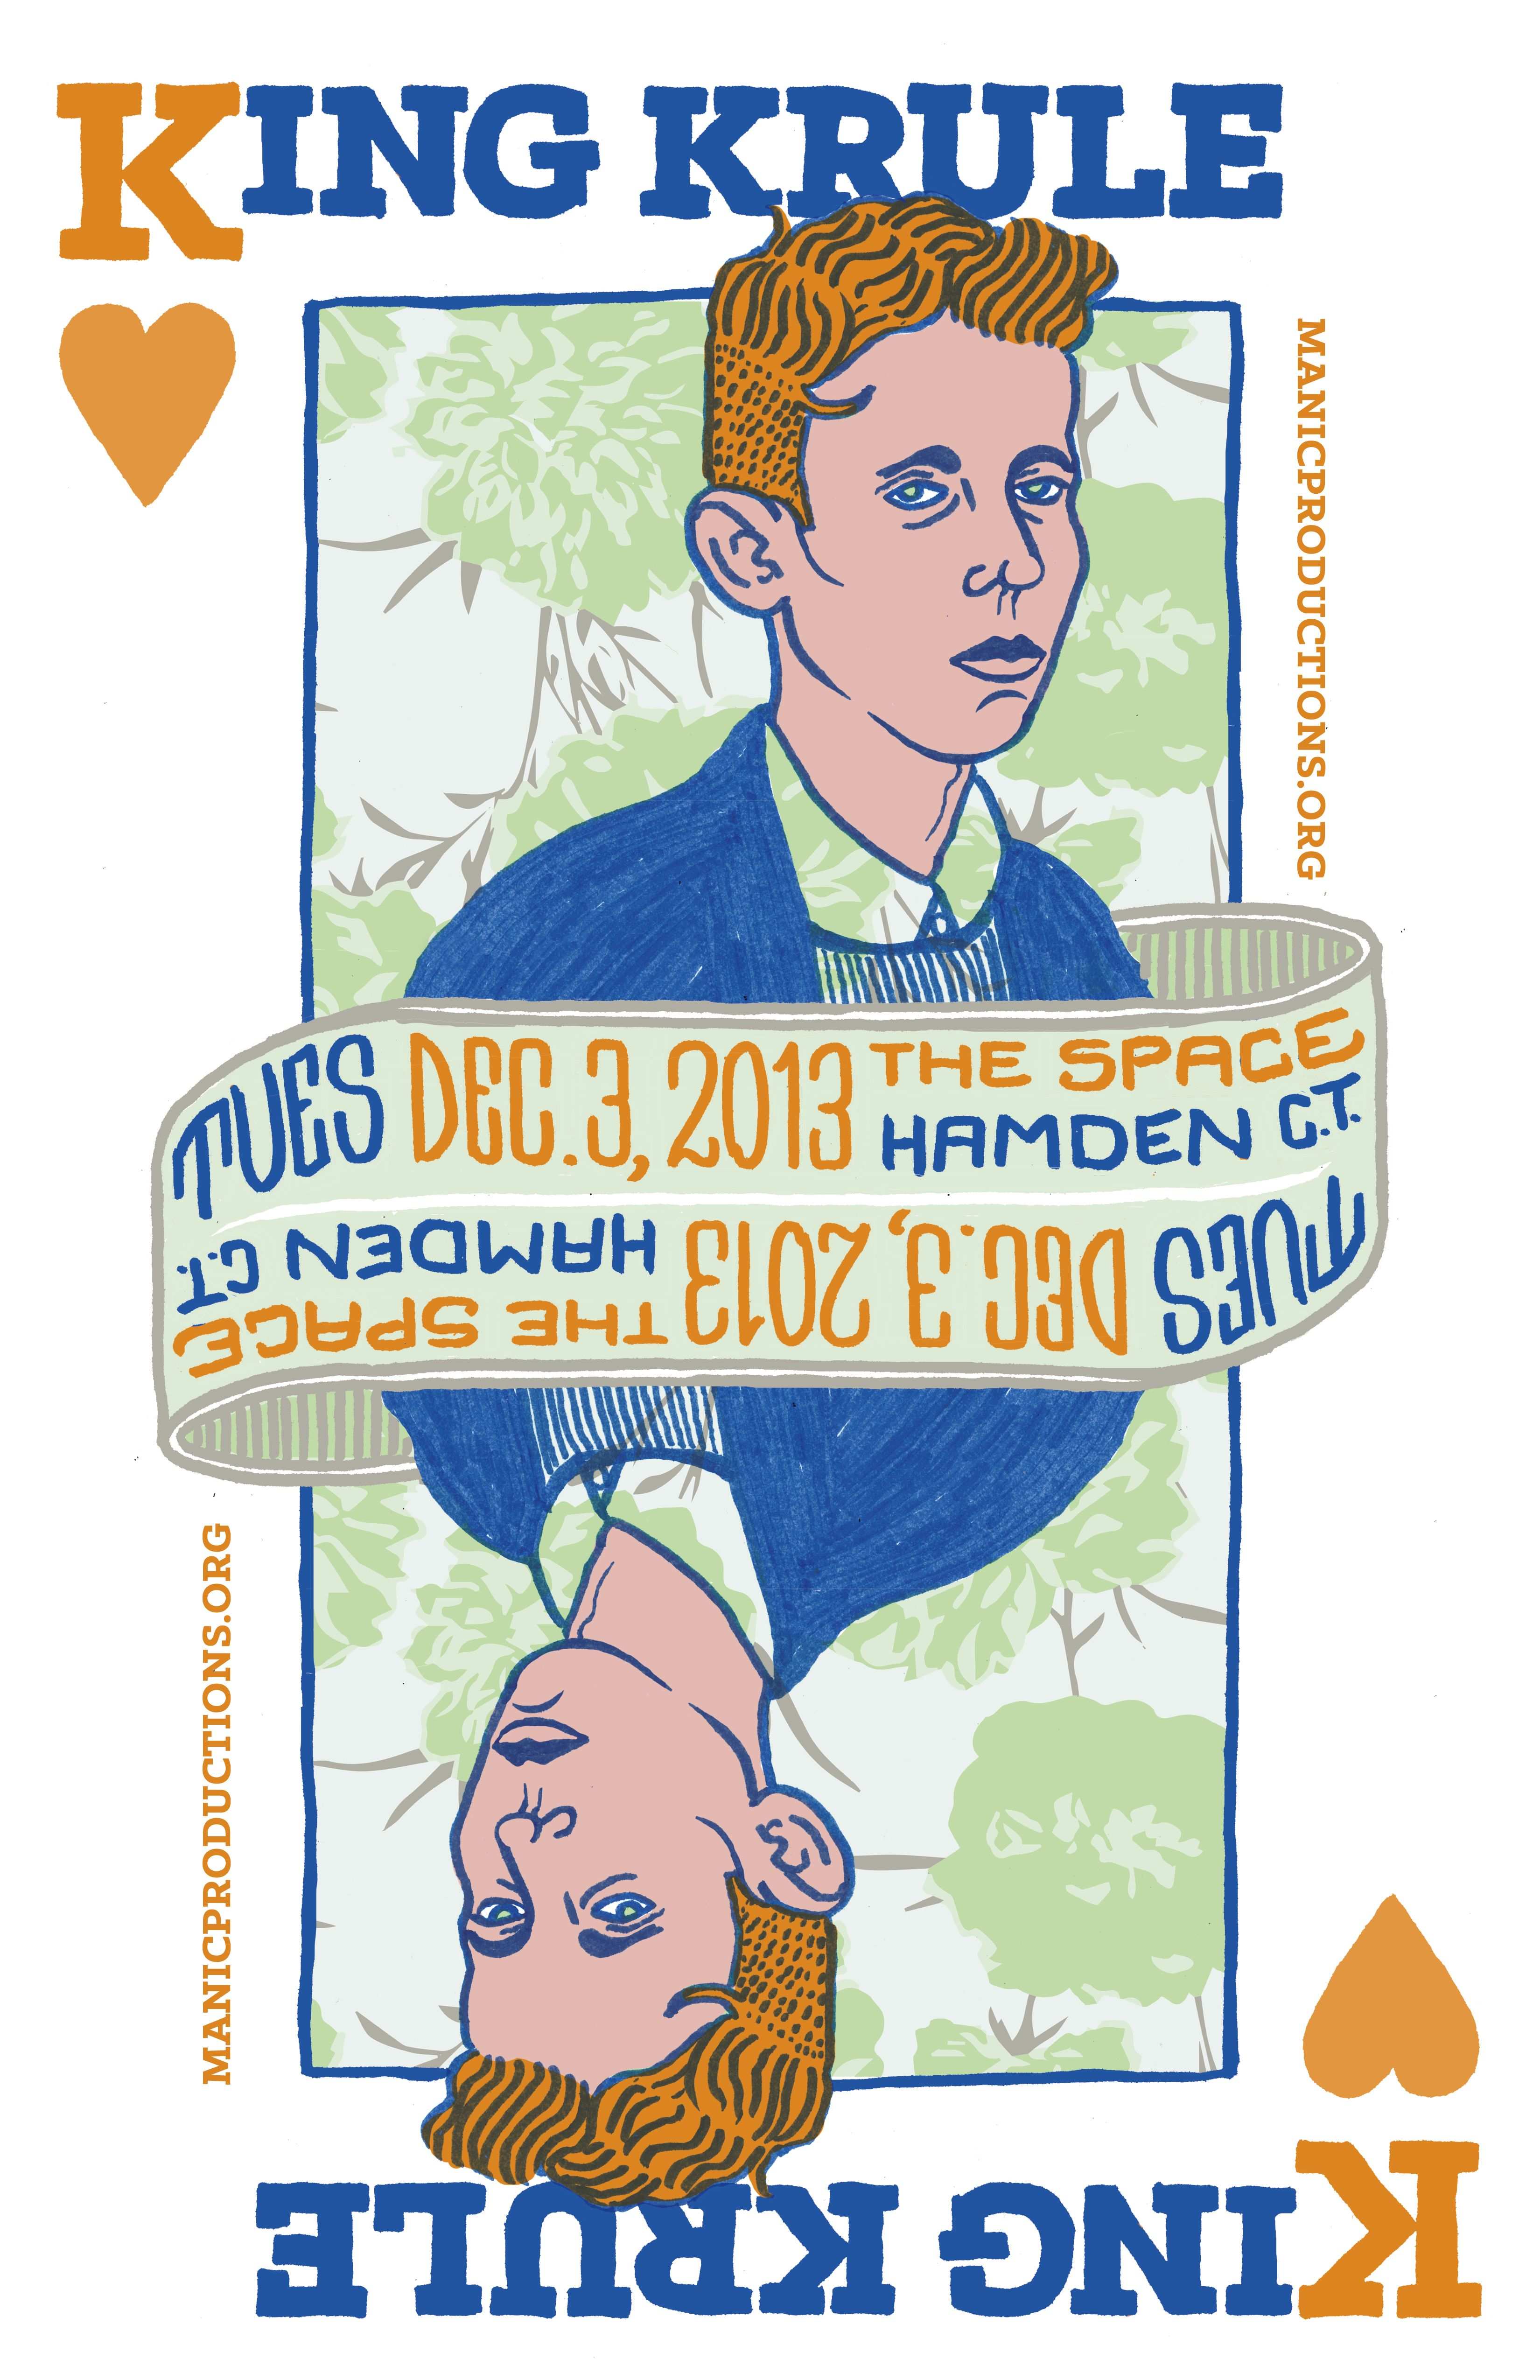 Arte Concert King Krule Pin By Matt Bourque Design On Poster Art King Krule Poster Art